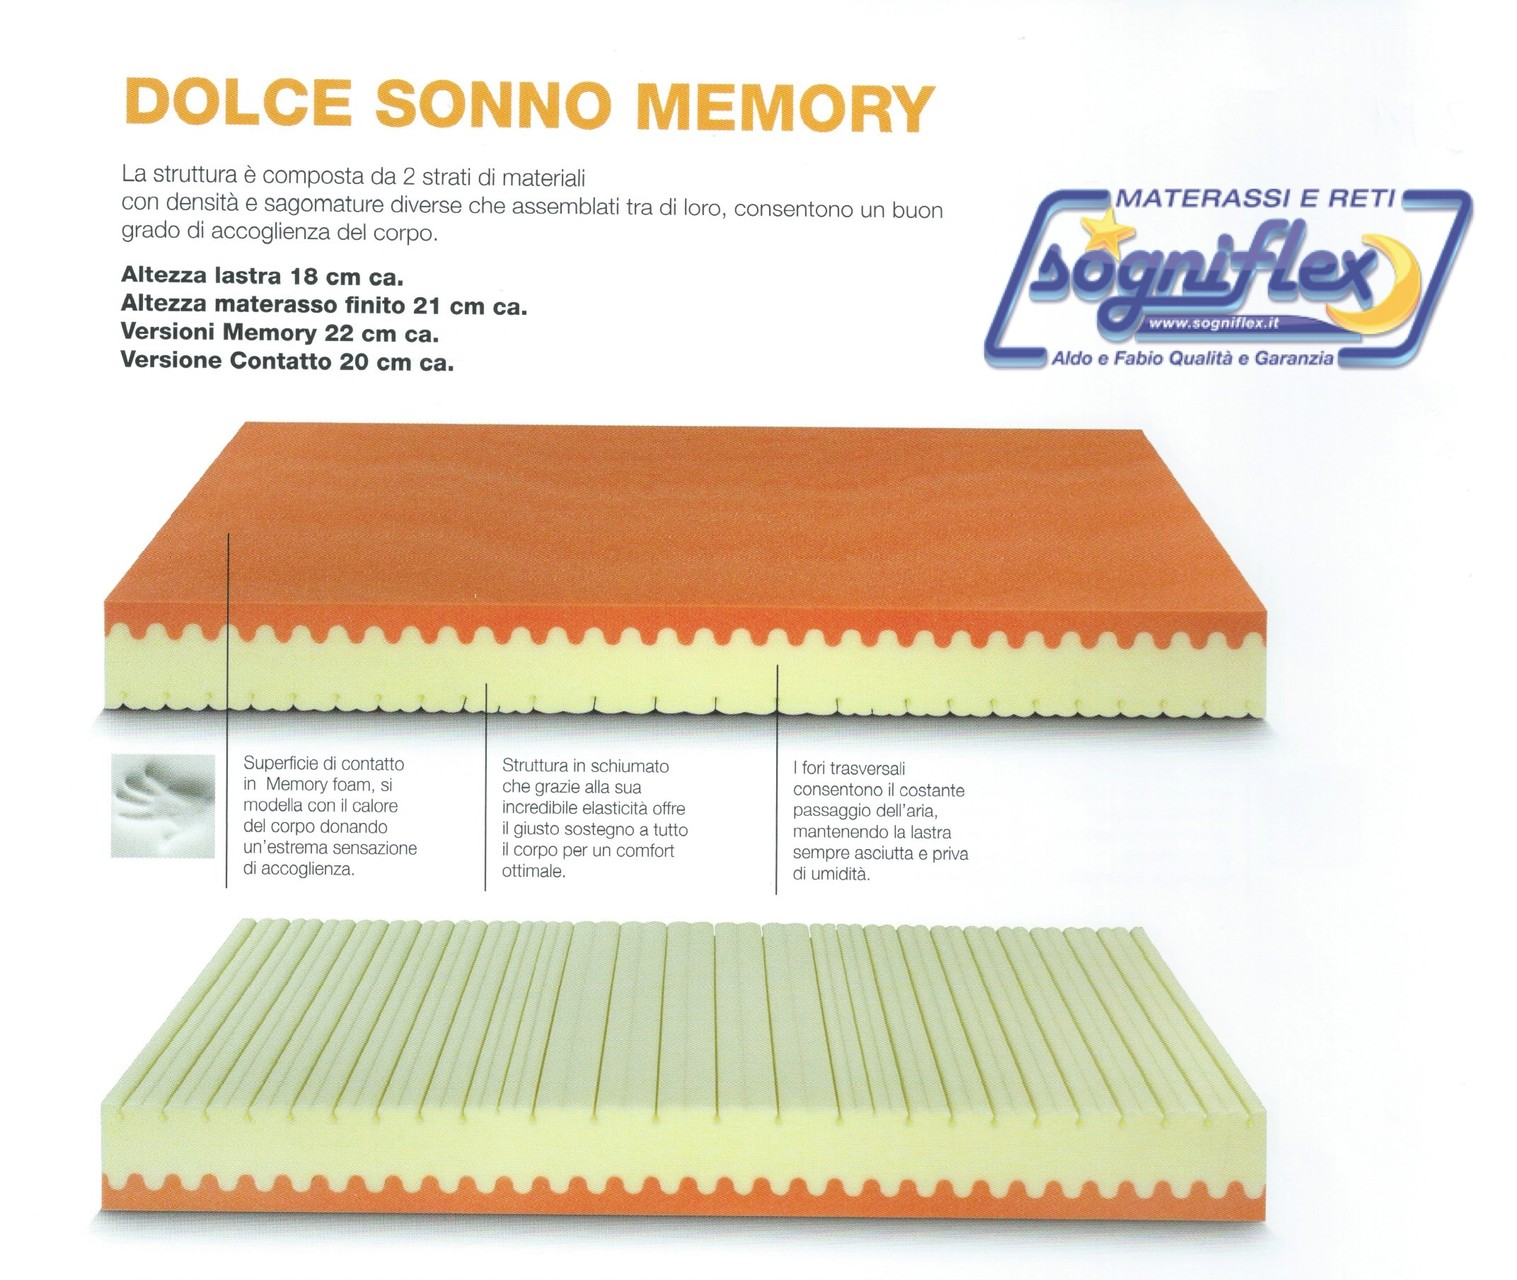 Materasso Dolce Sonno Memory